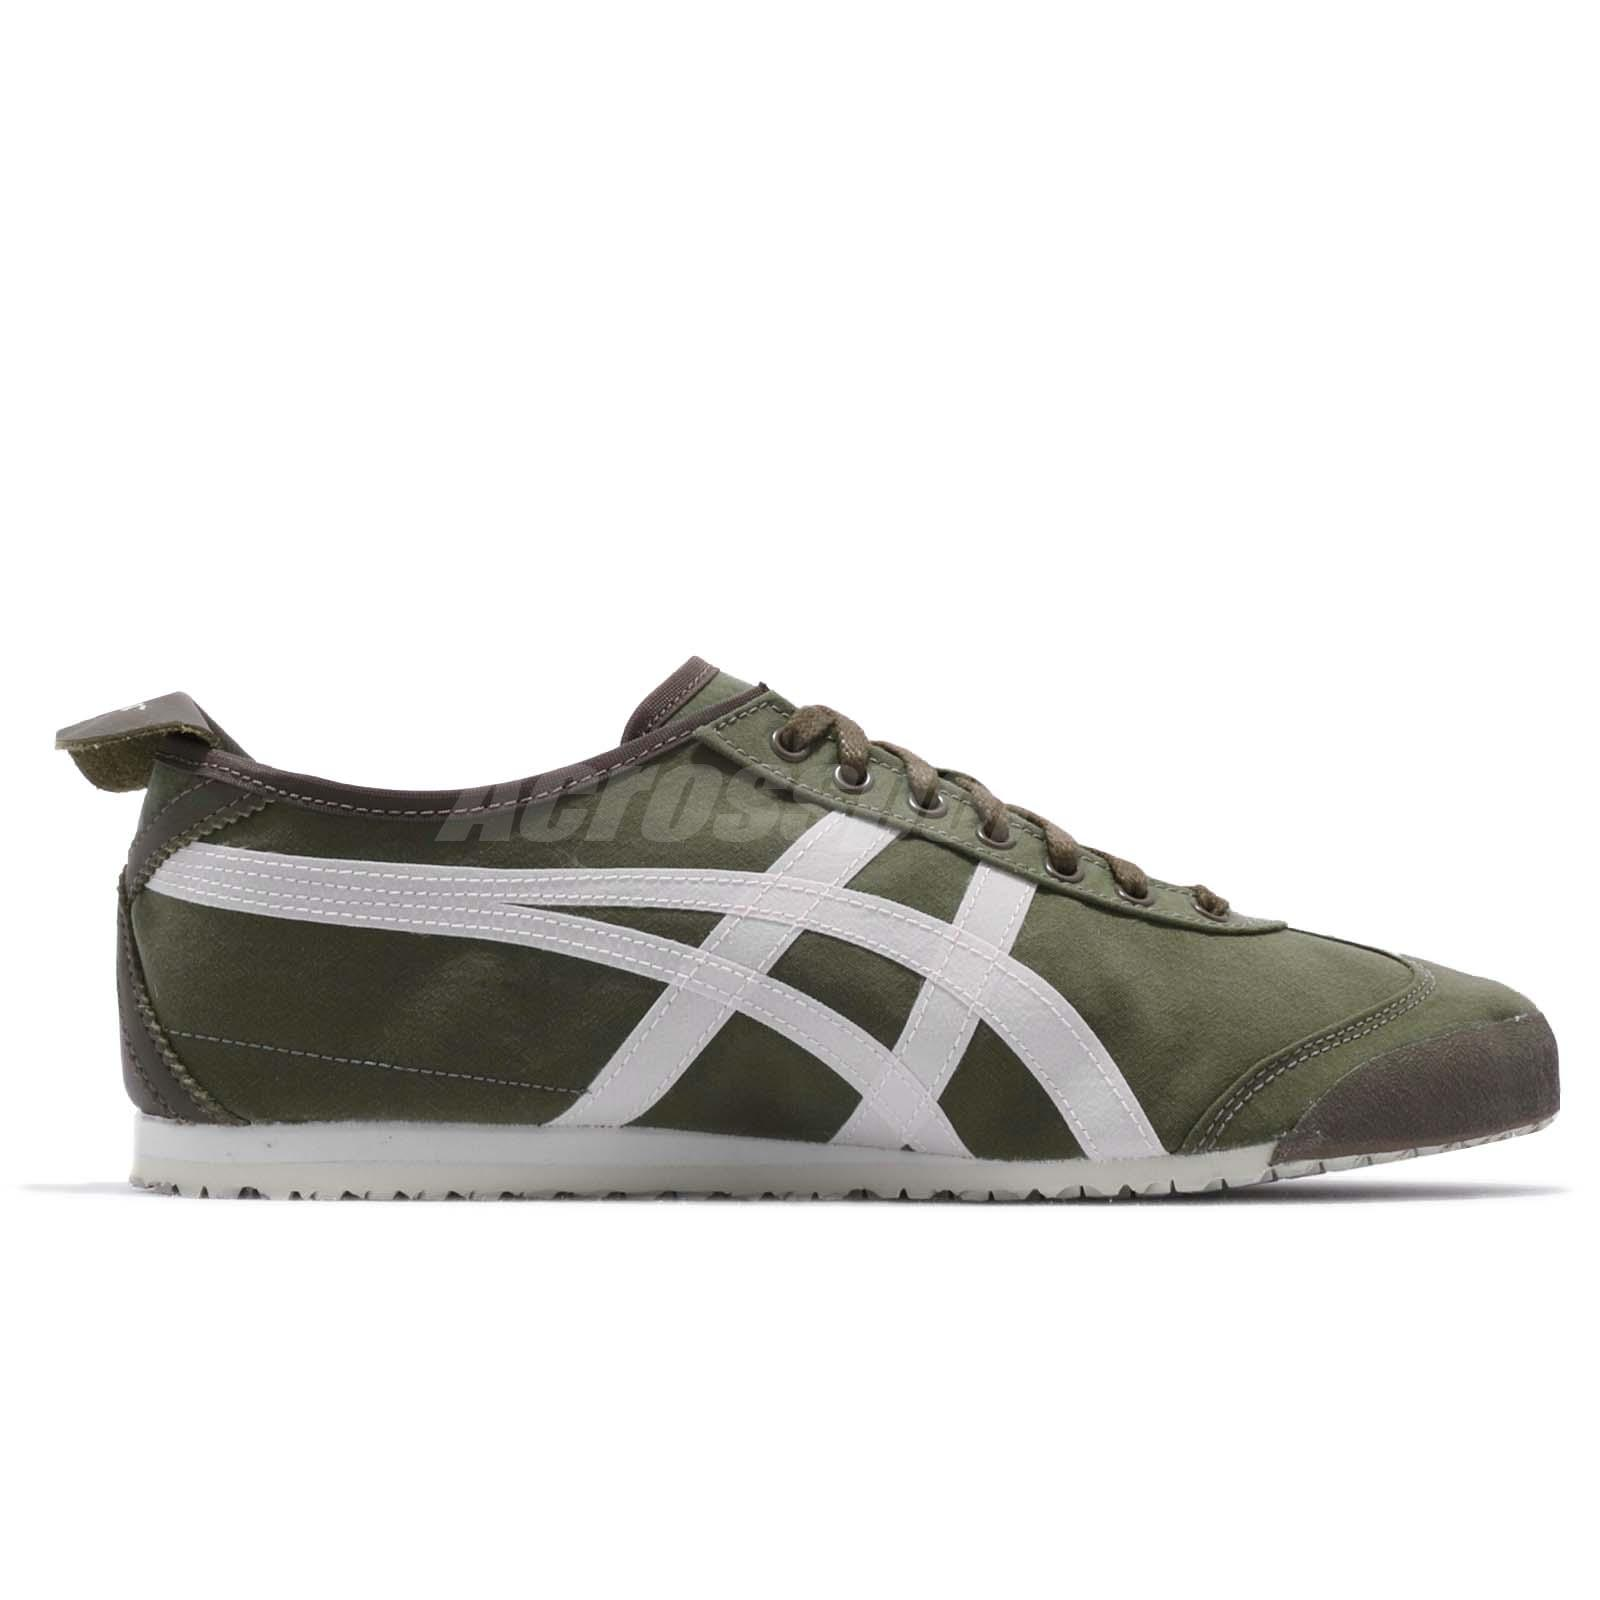 Asics Onitsuka Tiger Mexico 66 Olive Green Men Women Running Shoes 1183A348-300